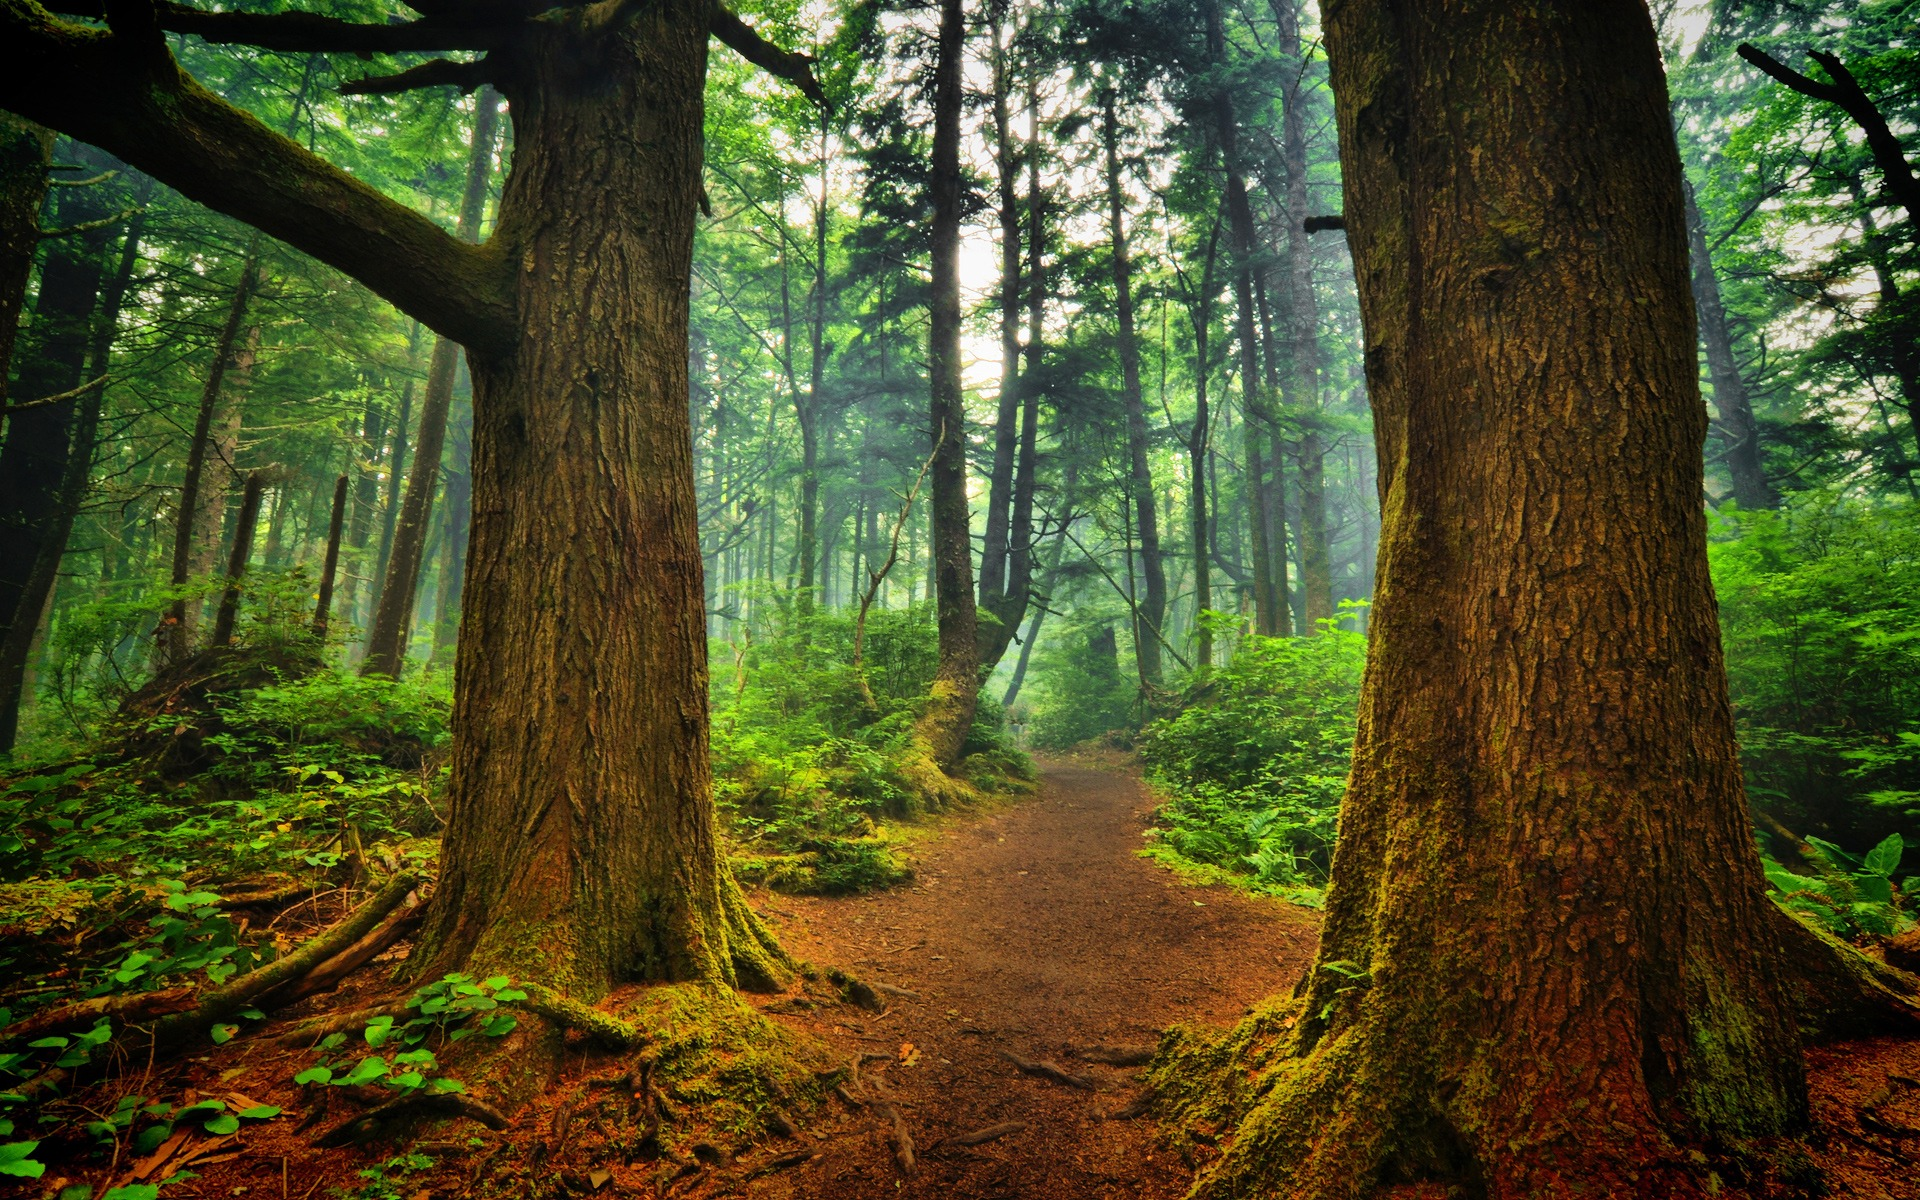 Forest Wall Paper forest wallpaper wallpapers for free download about (3,020